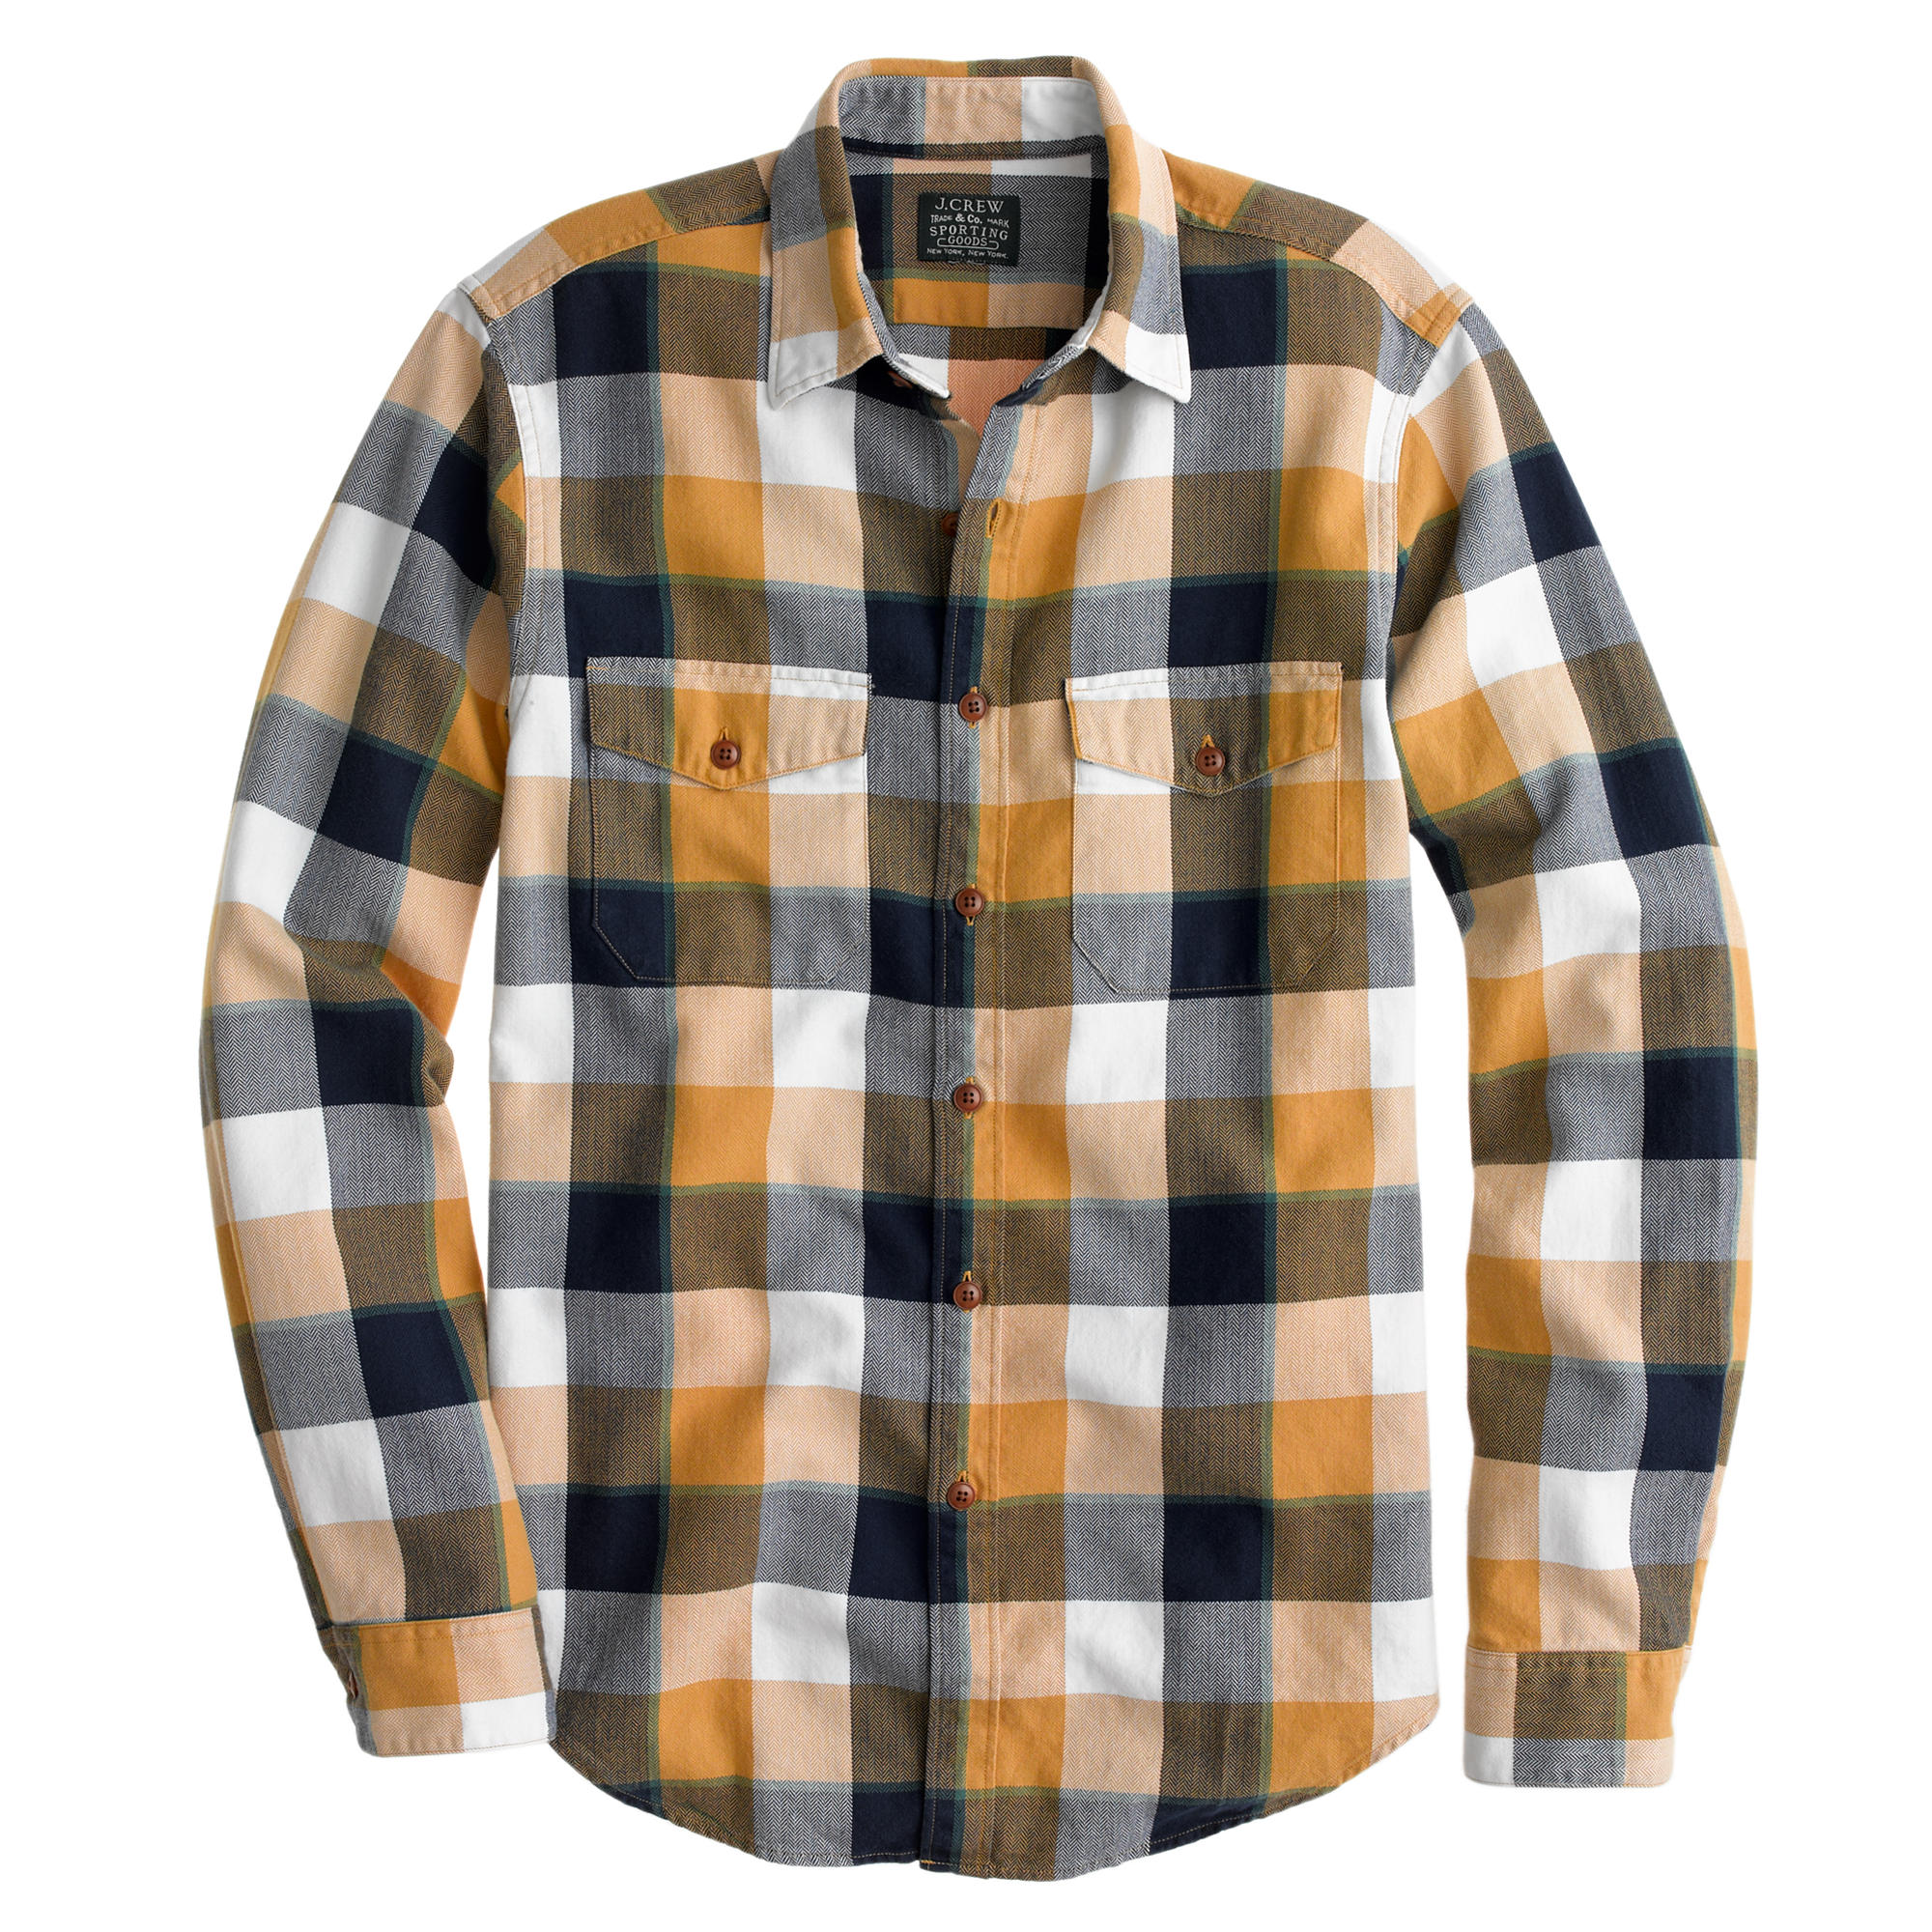 Flannel shirt in classic herringbone plaid j crew for How to wash flannel shirts